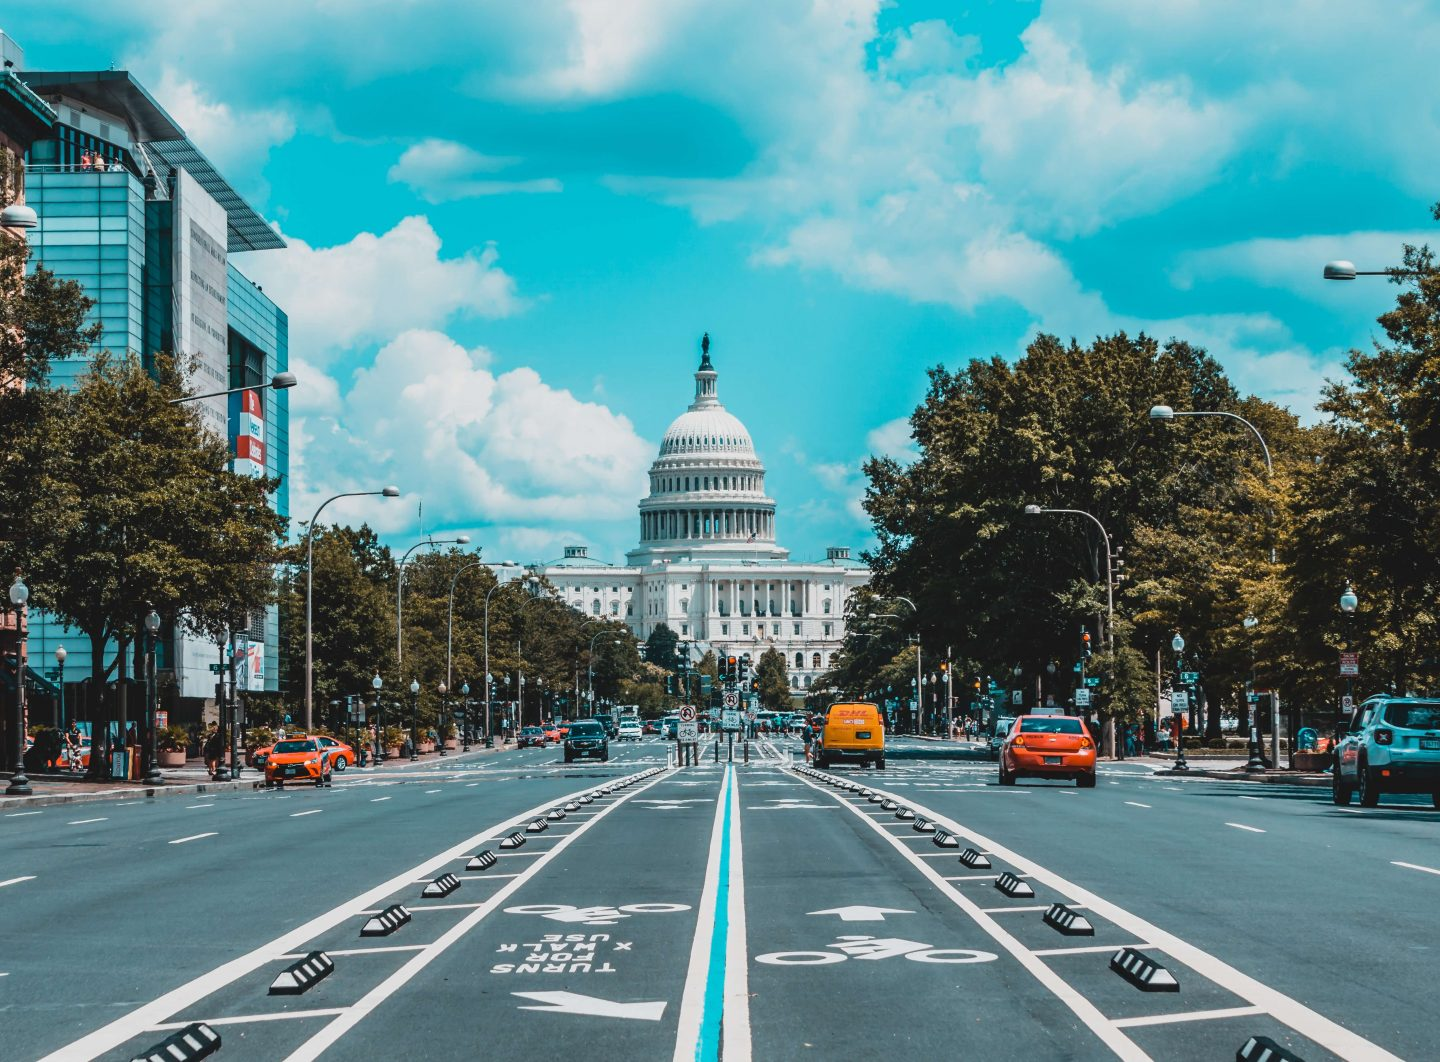 Top 5 Things To Do In Washington D.C